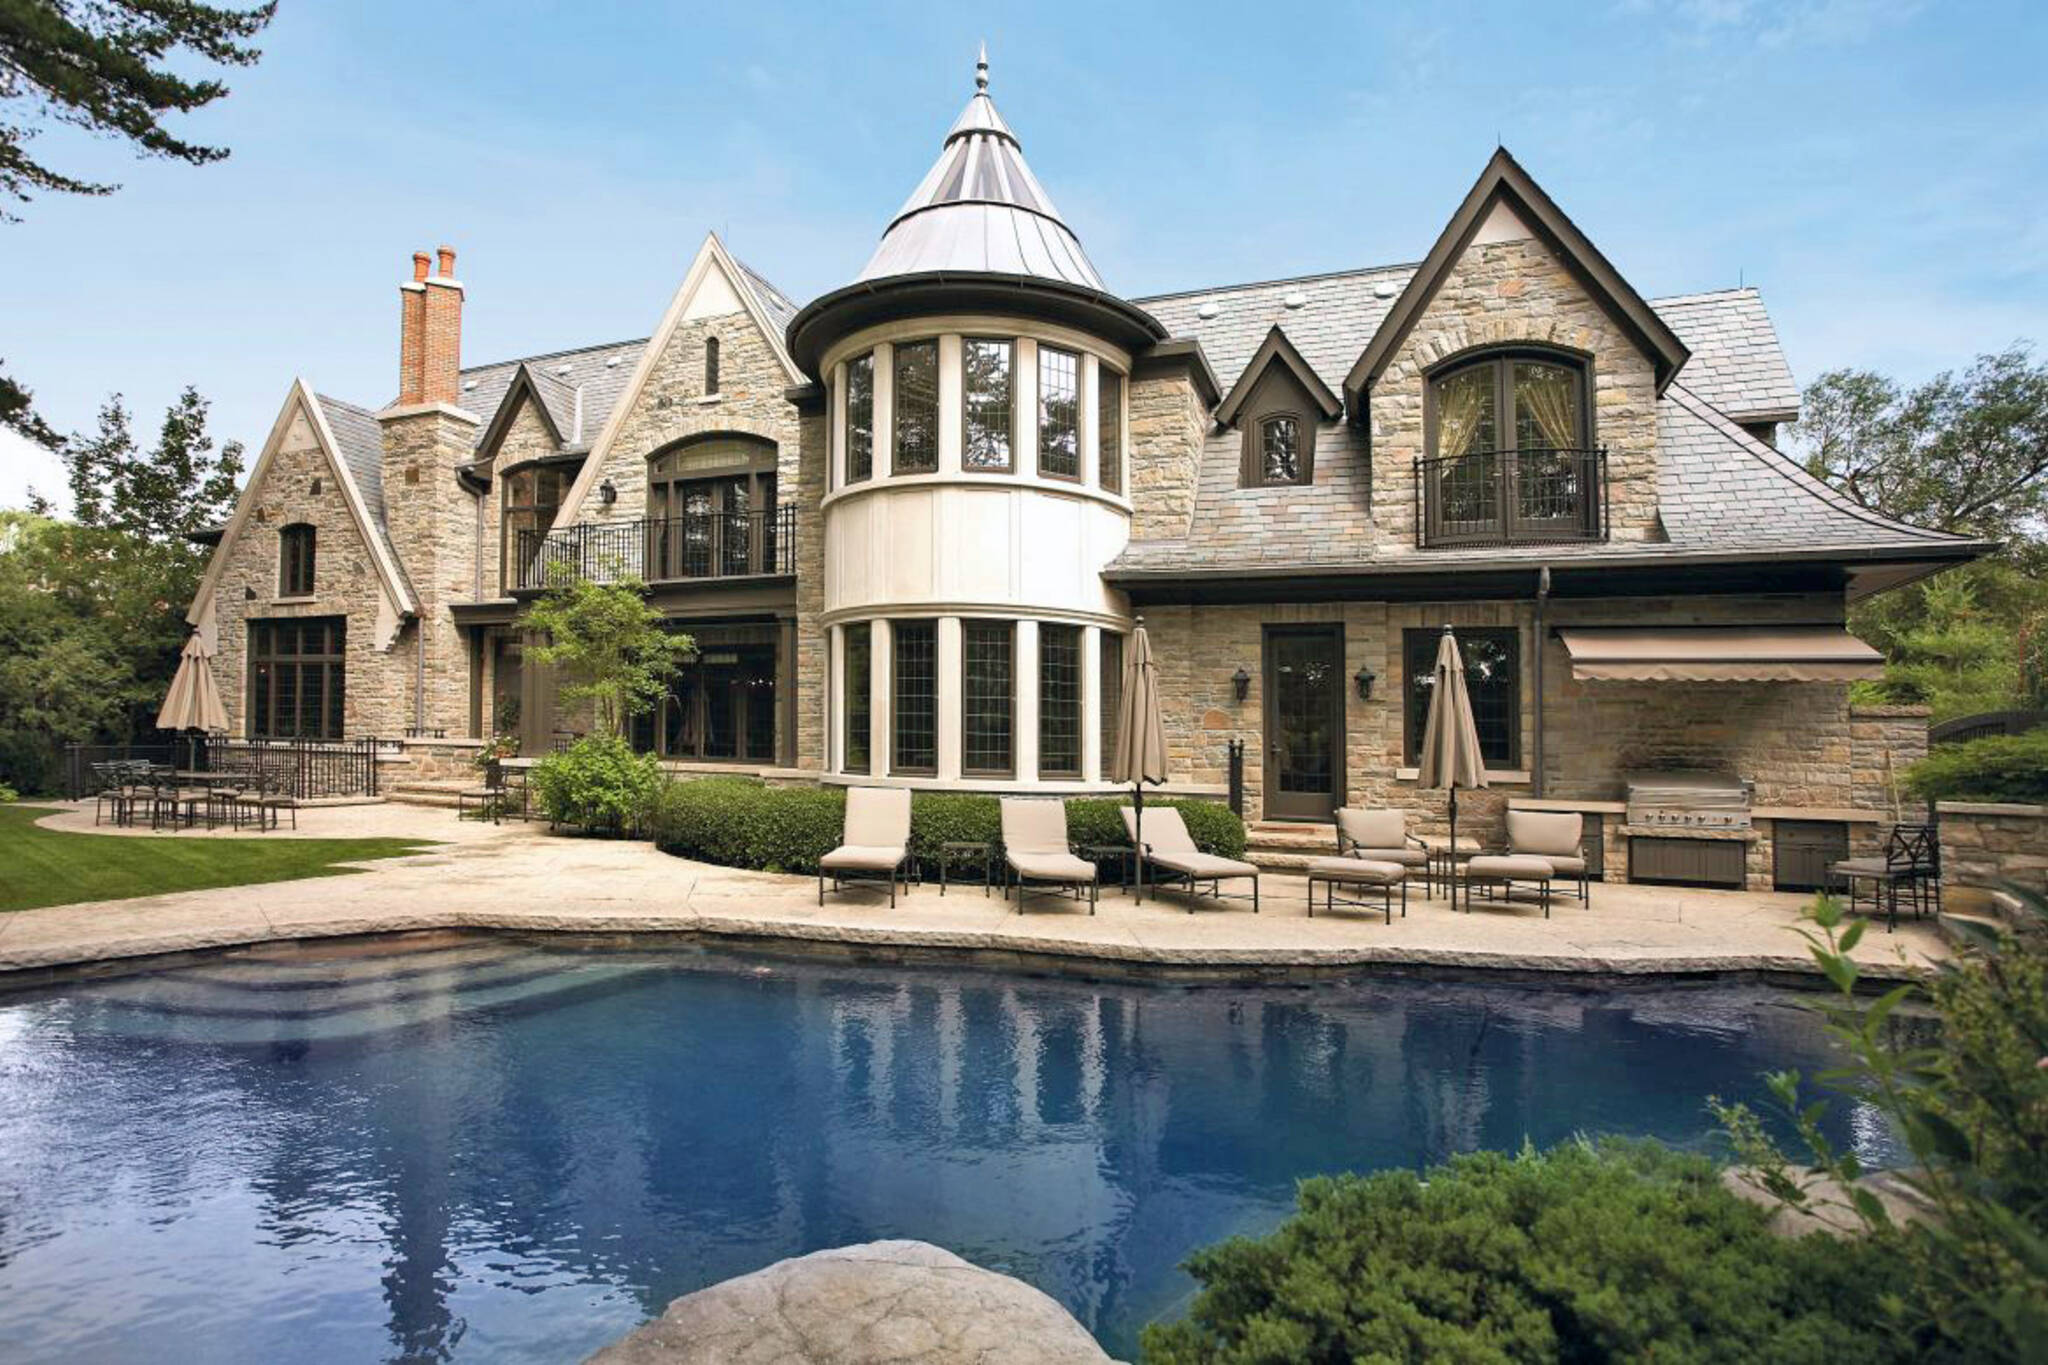 Sold unbelievable toronto mansion goes for 11 3 million for House design com